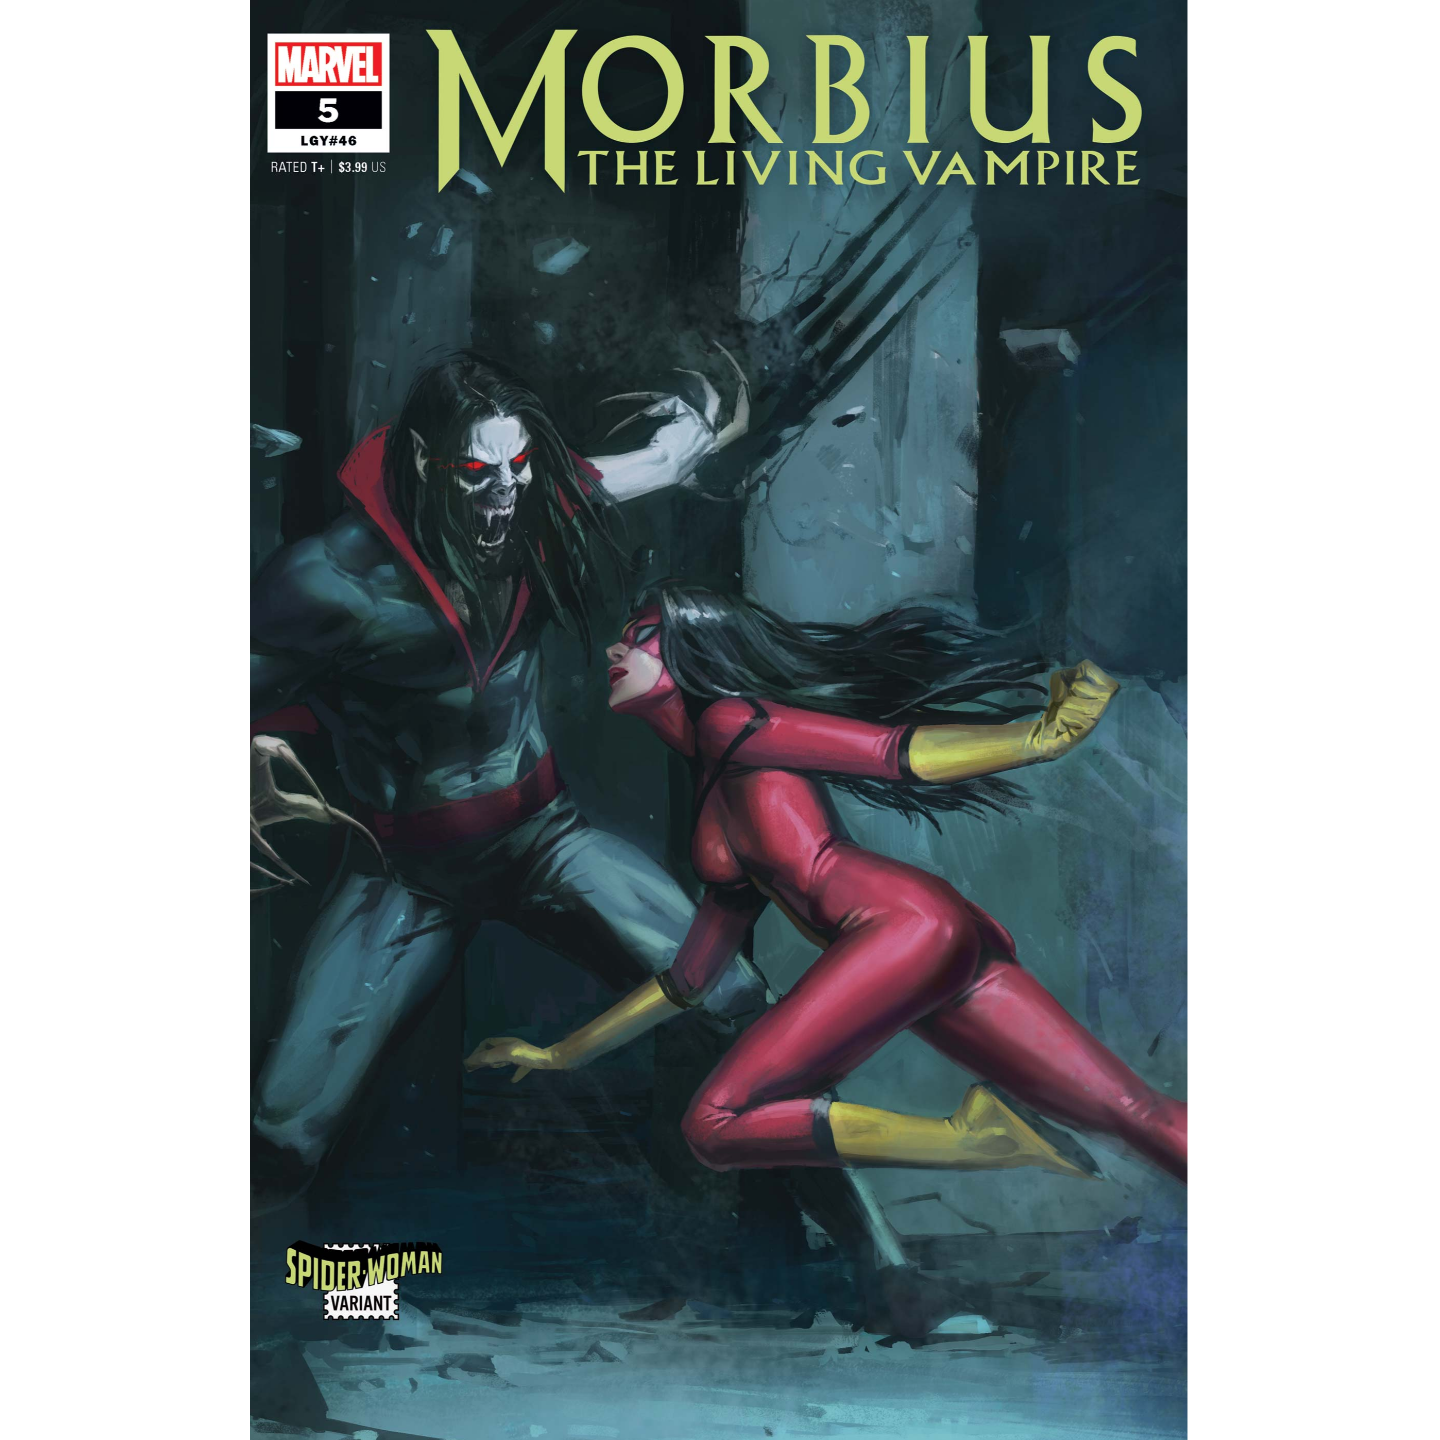 MORBIUS #5 PYEONG JUN PARK SPIDER-WOMAN VAR